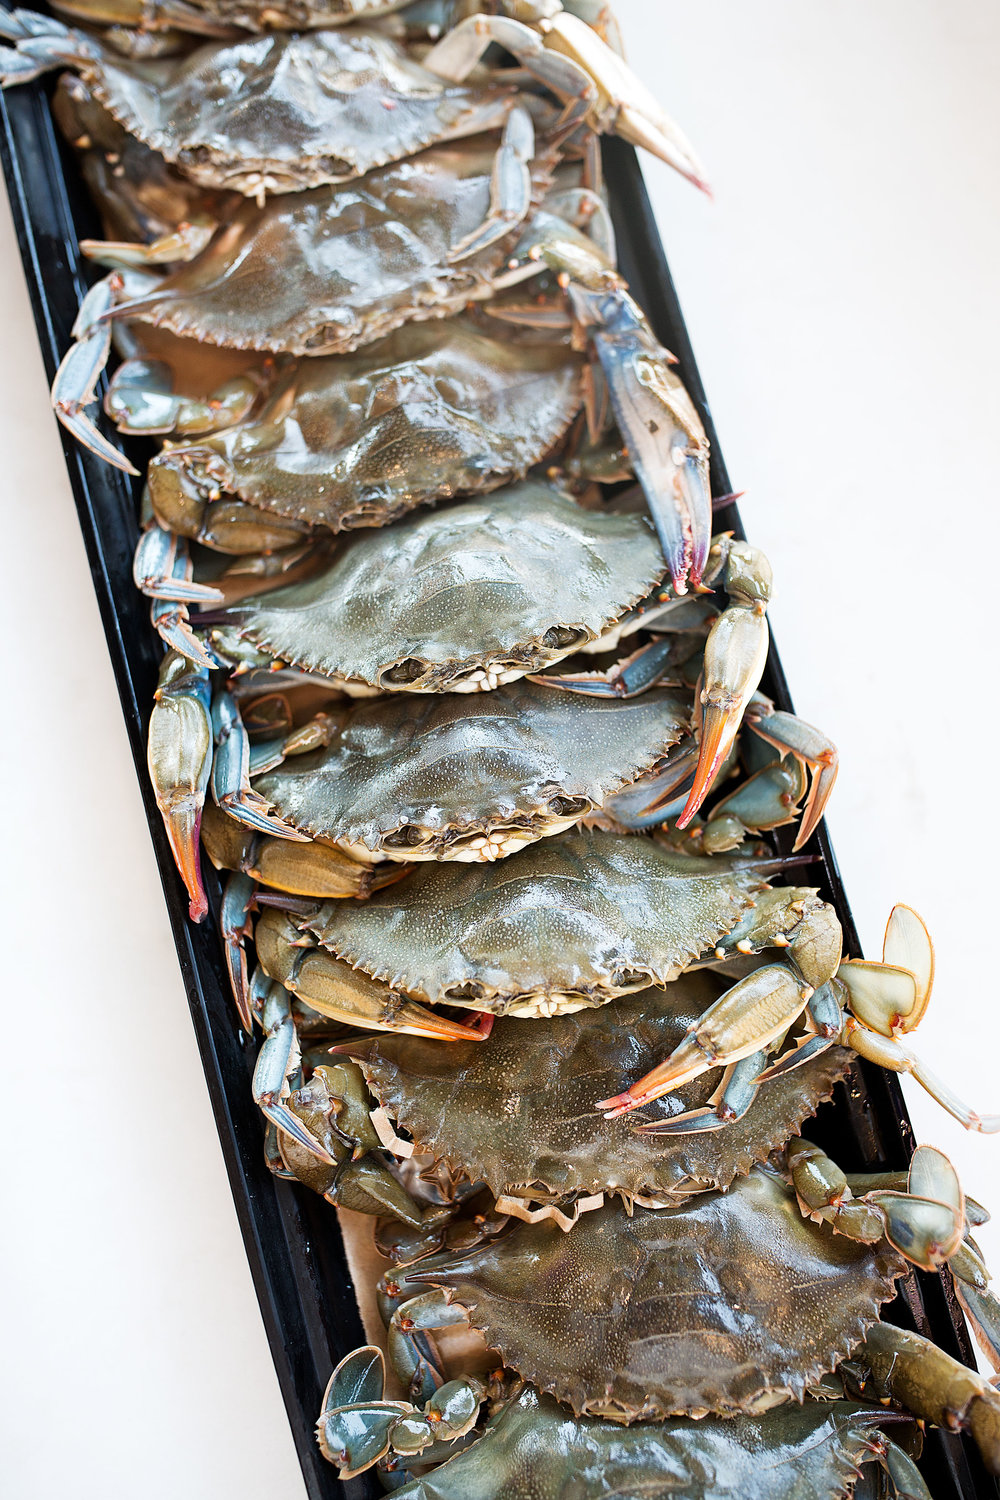 soft shell crabs lined up raw